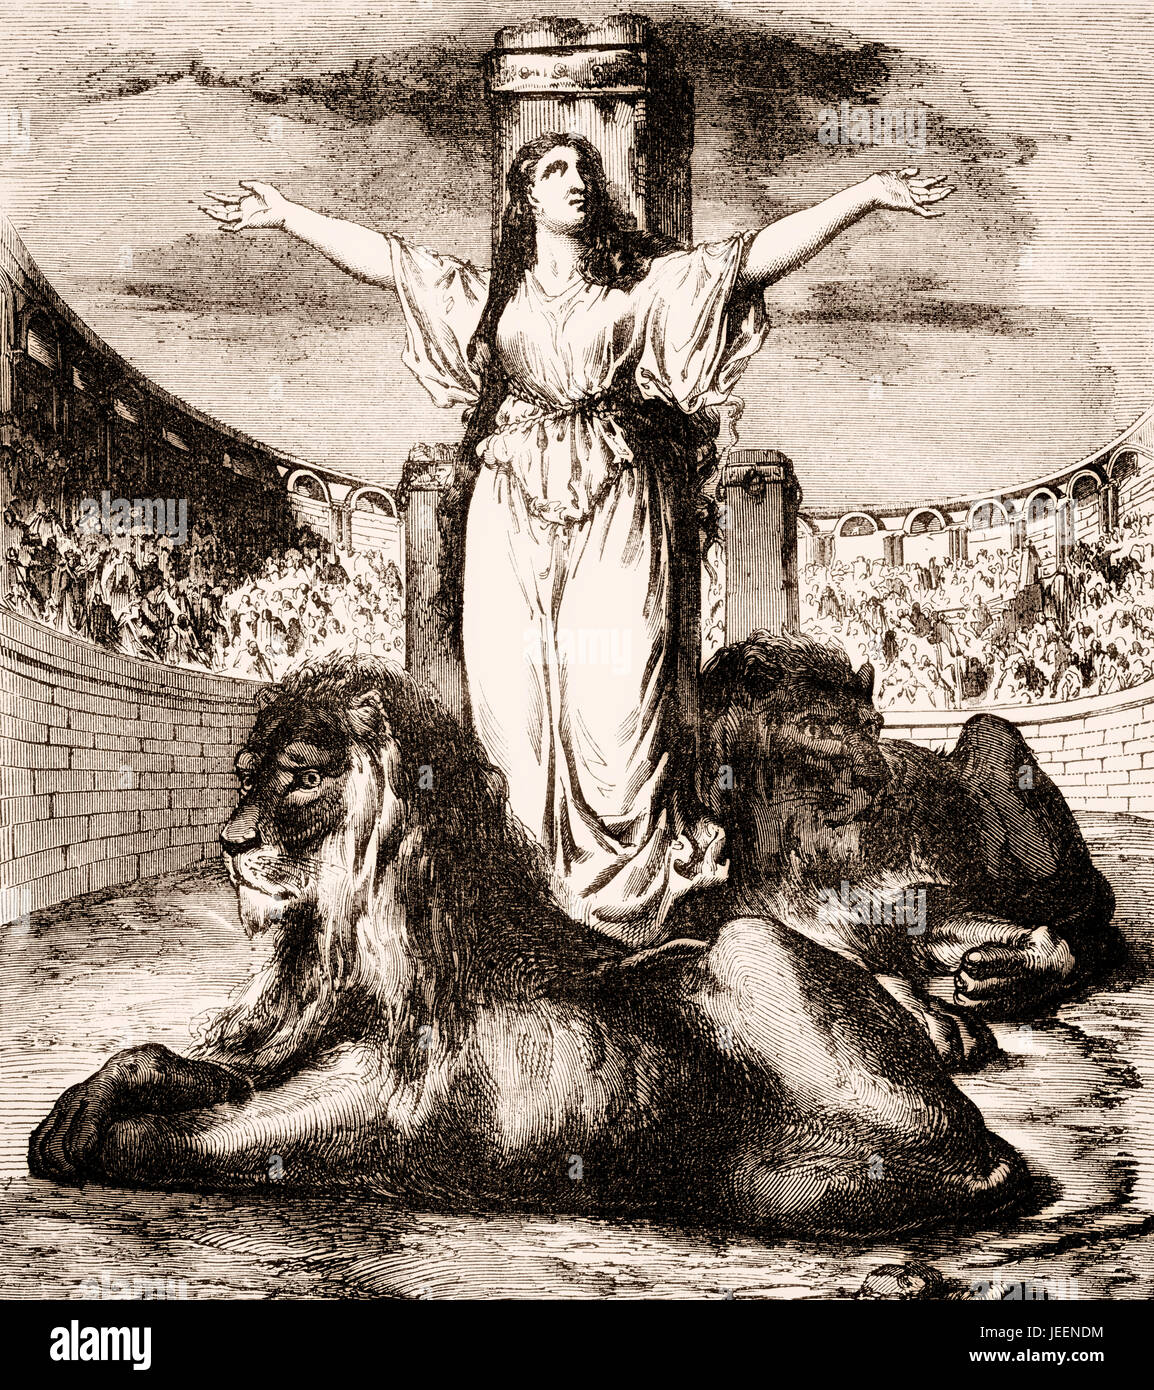 Saint Blandina or Blandine in the arena with lions, died 177 AD, a Christian martyr during the reign of Emperor - Stock Image